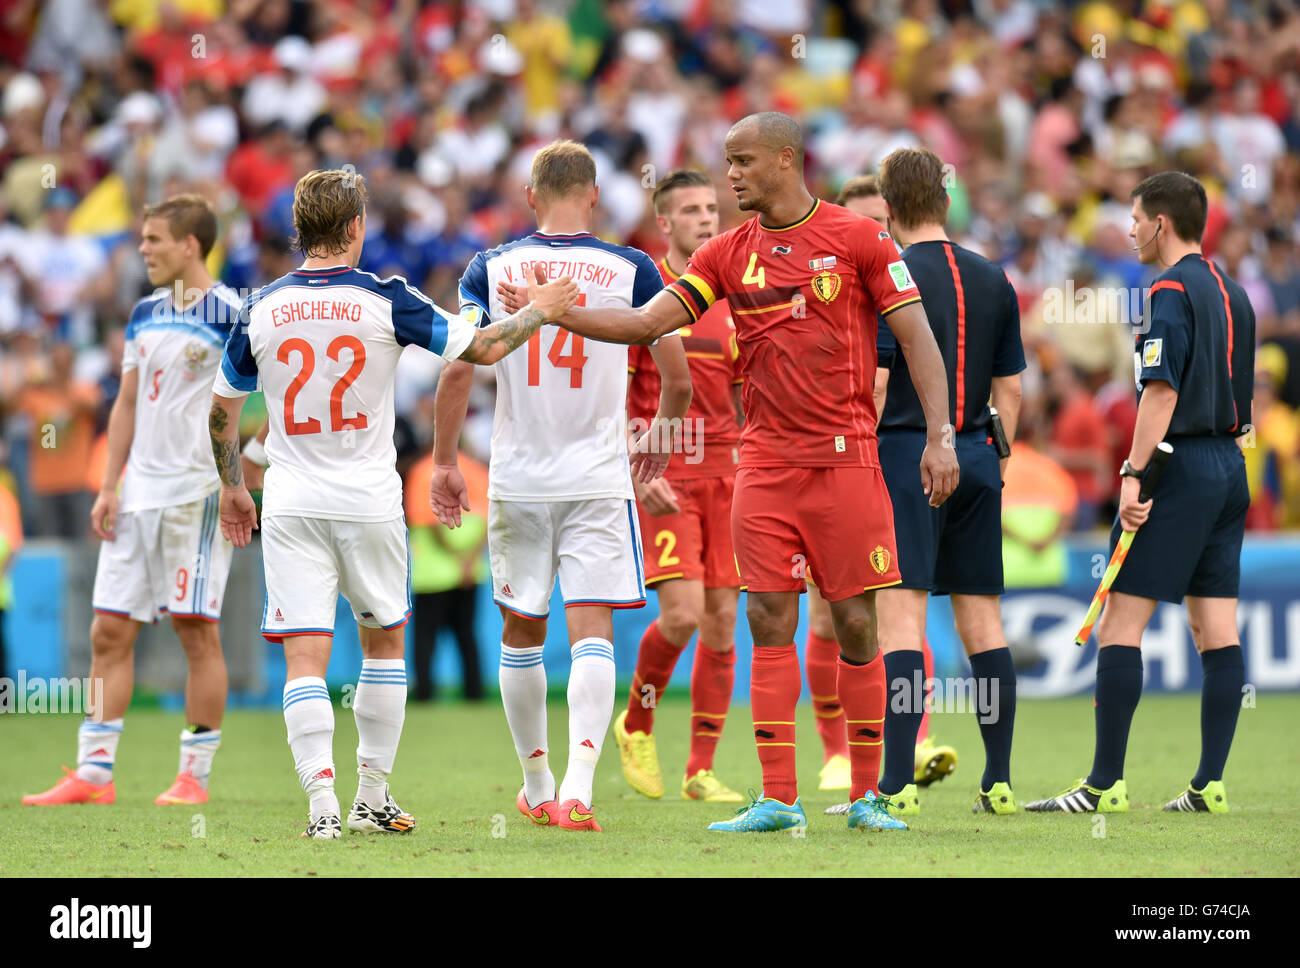 online retailer 364f5 d95f4 Soccer - FIFA World Cup 2014 - Group H - Belgium v Russia ...